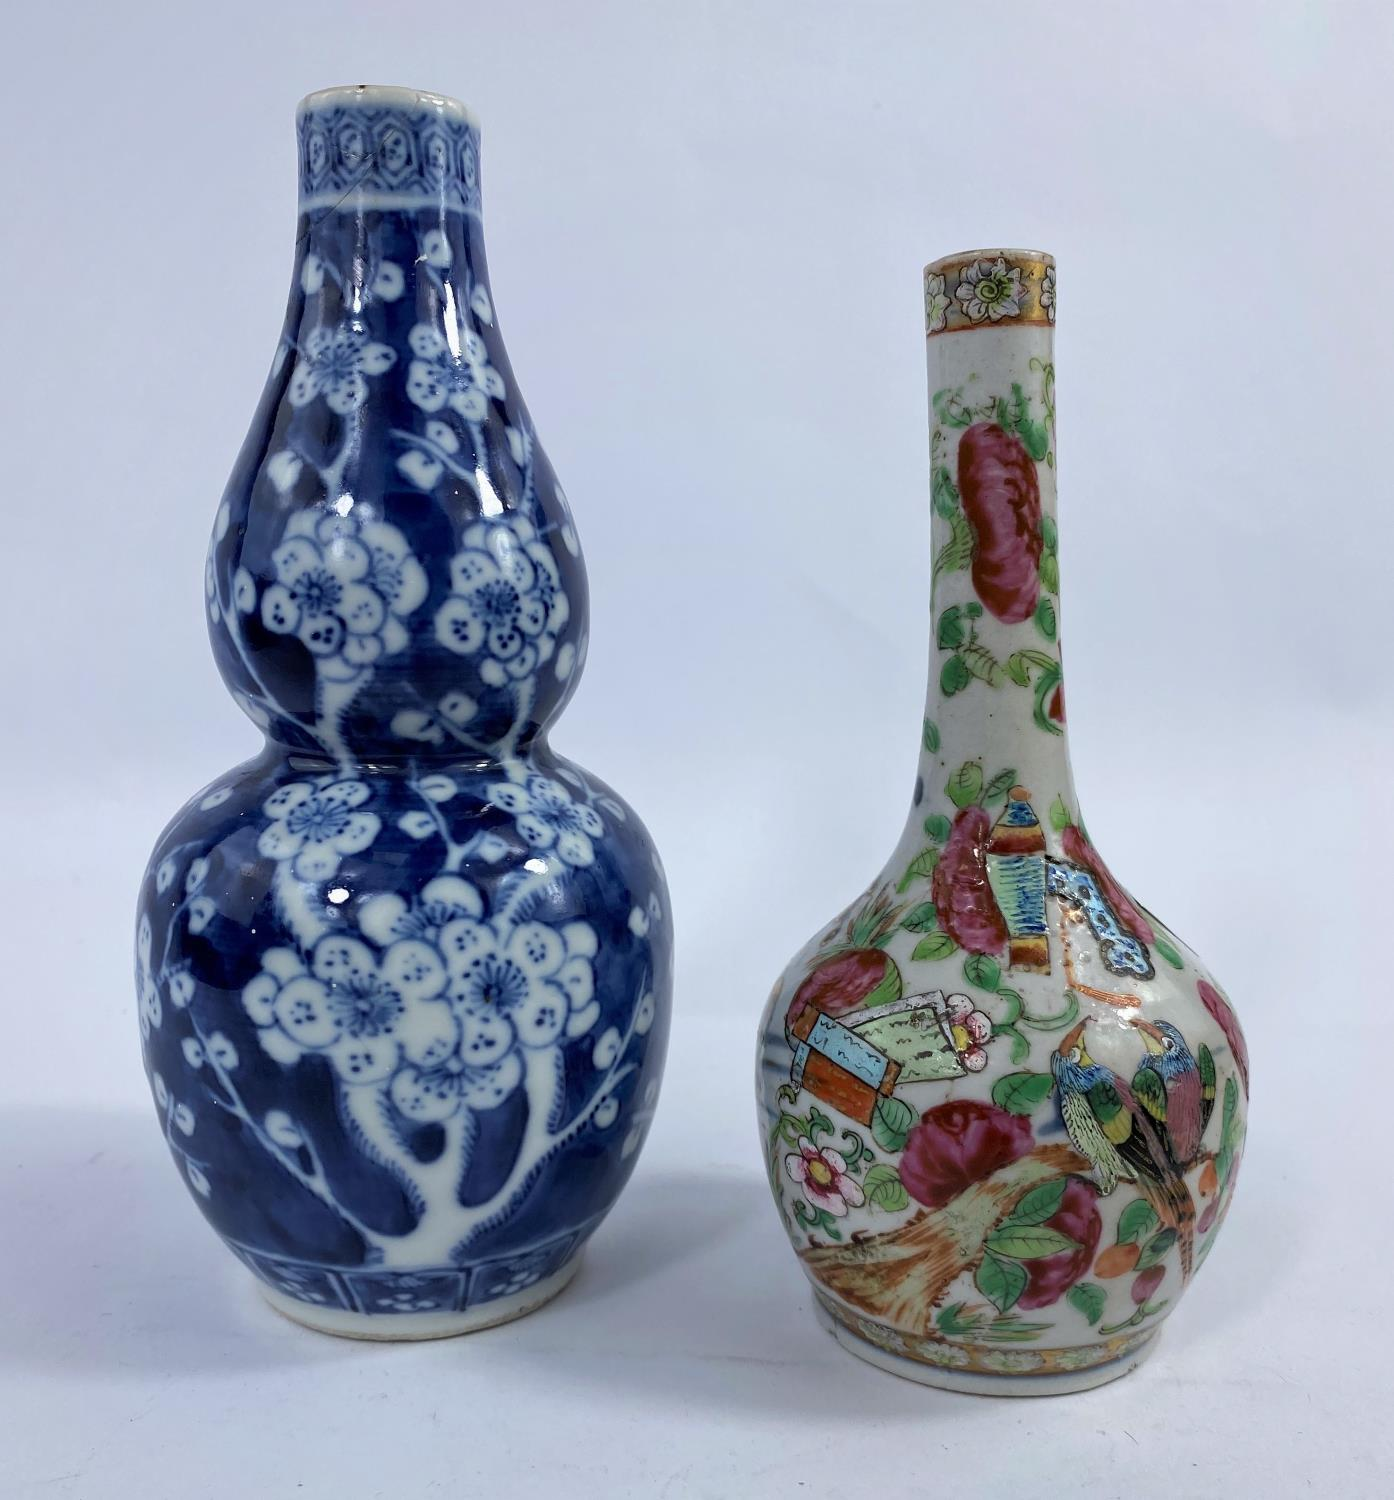 A 19th century Chinese blue and white double gourd vase, prunus blossom decoration, h. 19cm (rim a.